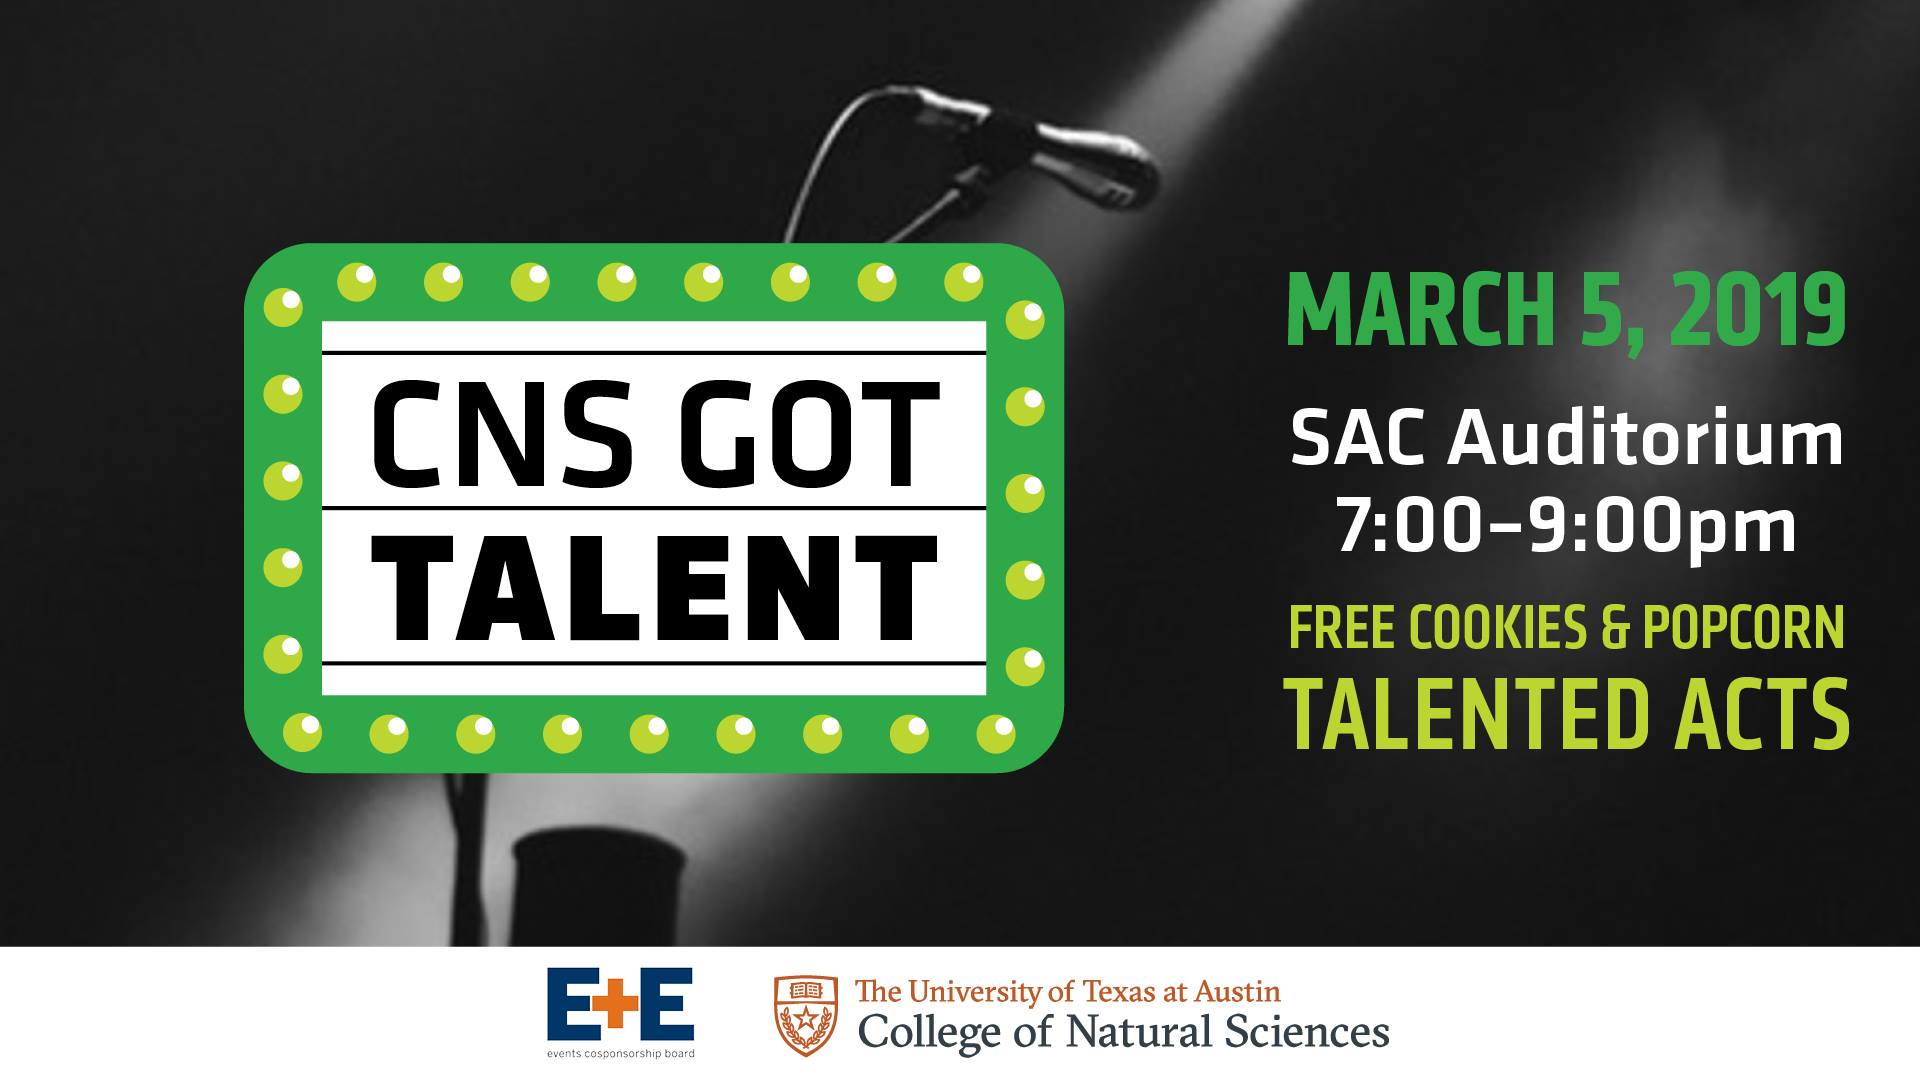 CNS Got Talent